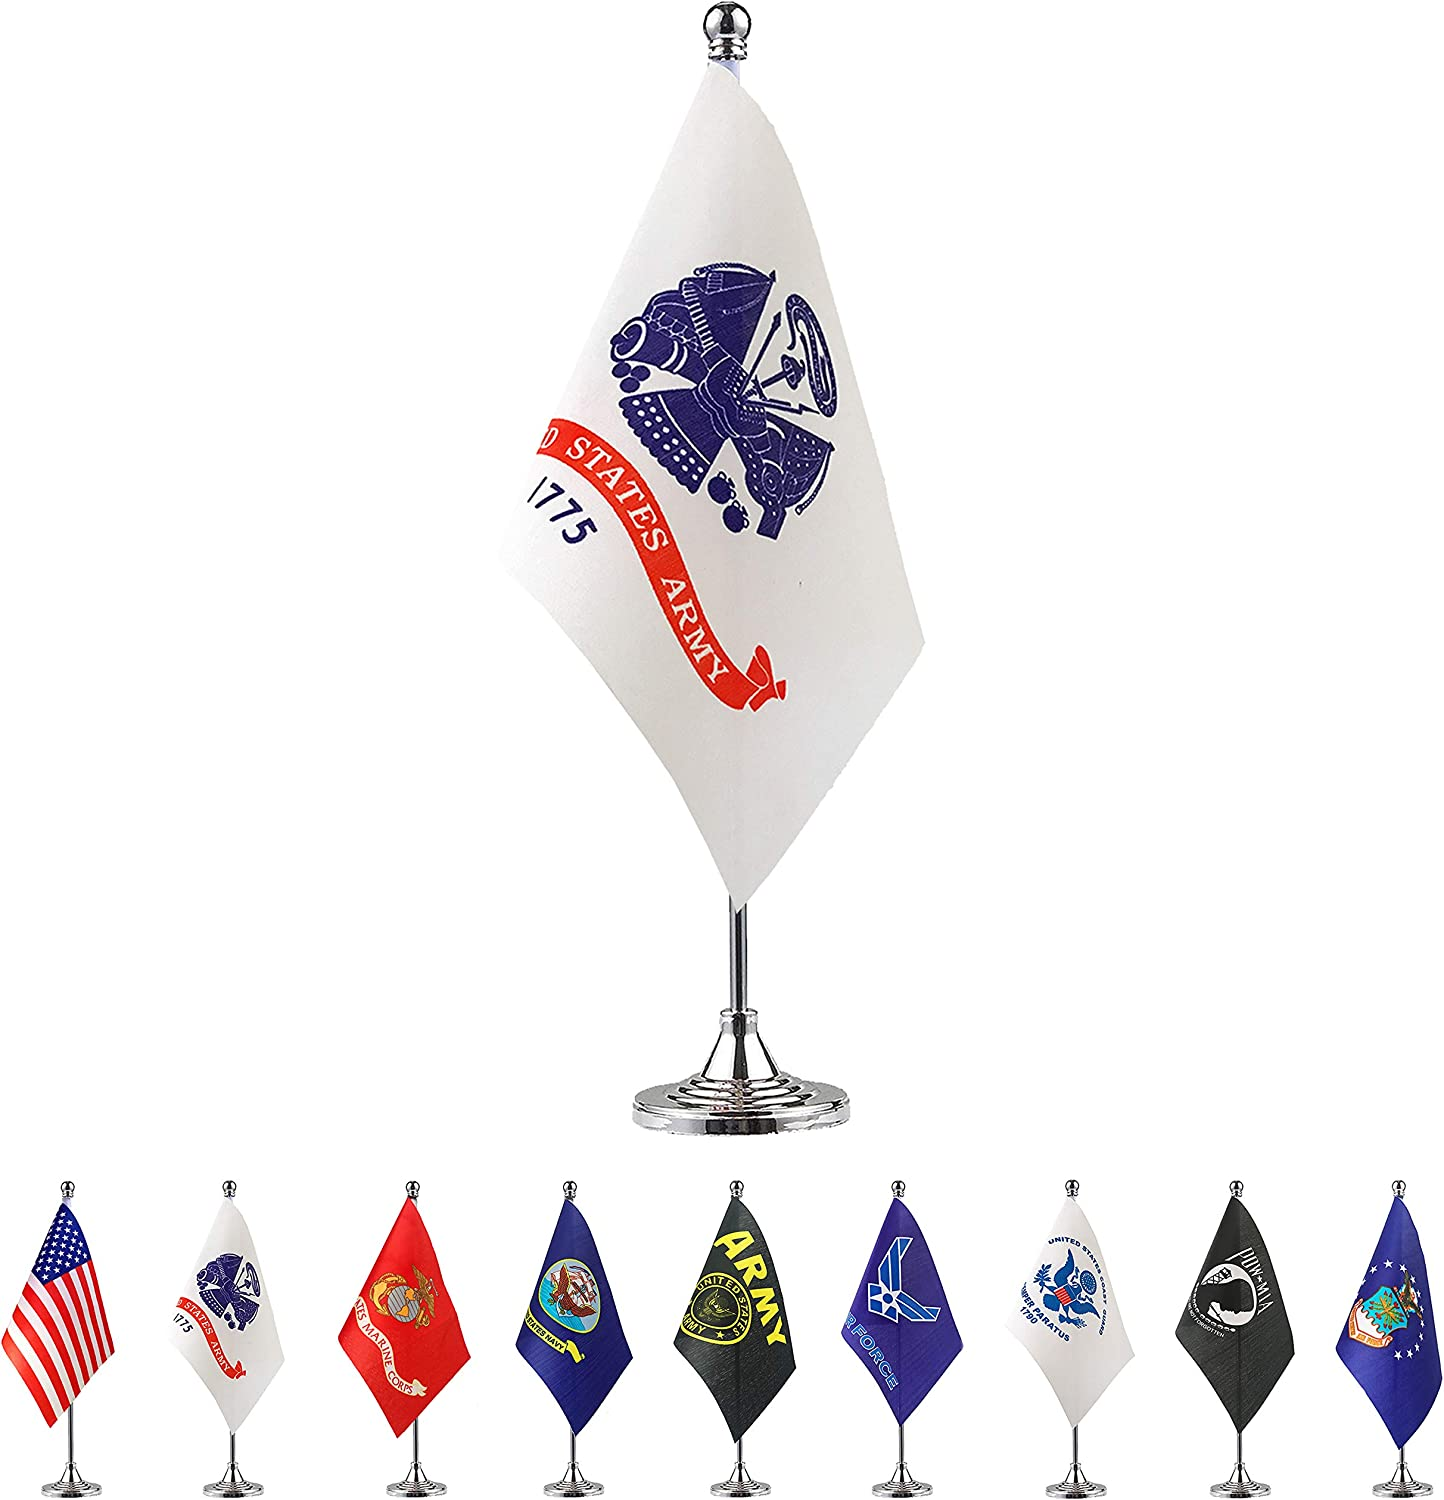 TSMD US Army Desk Flag Small Mini United States Military Table Flags with Stand Base,Decorations Supplies for Army Party Events Celebration